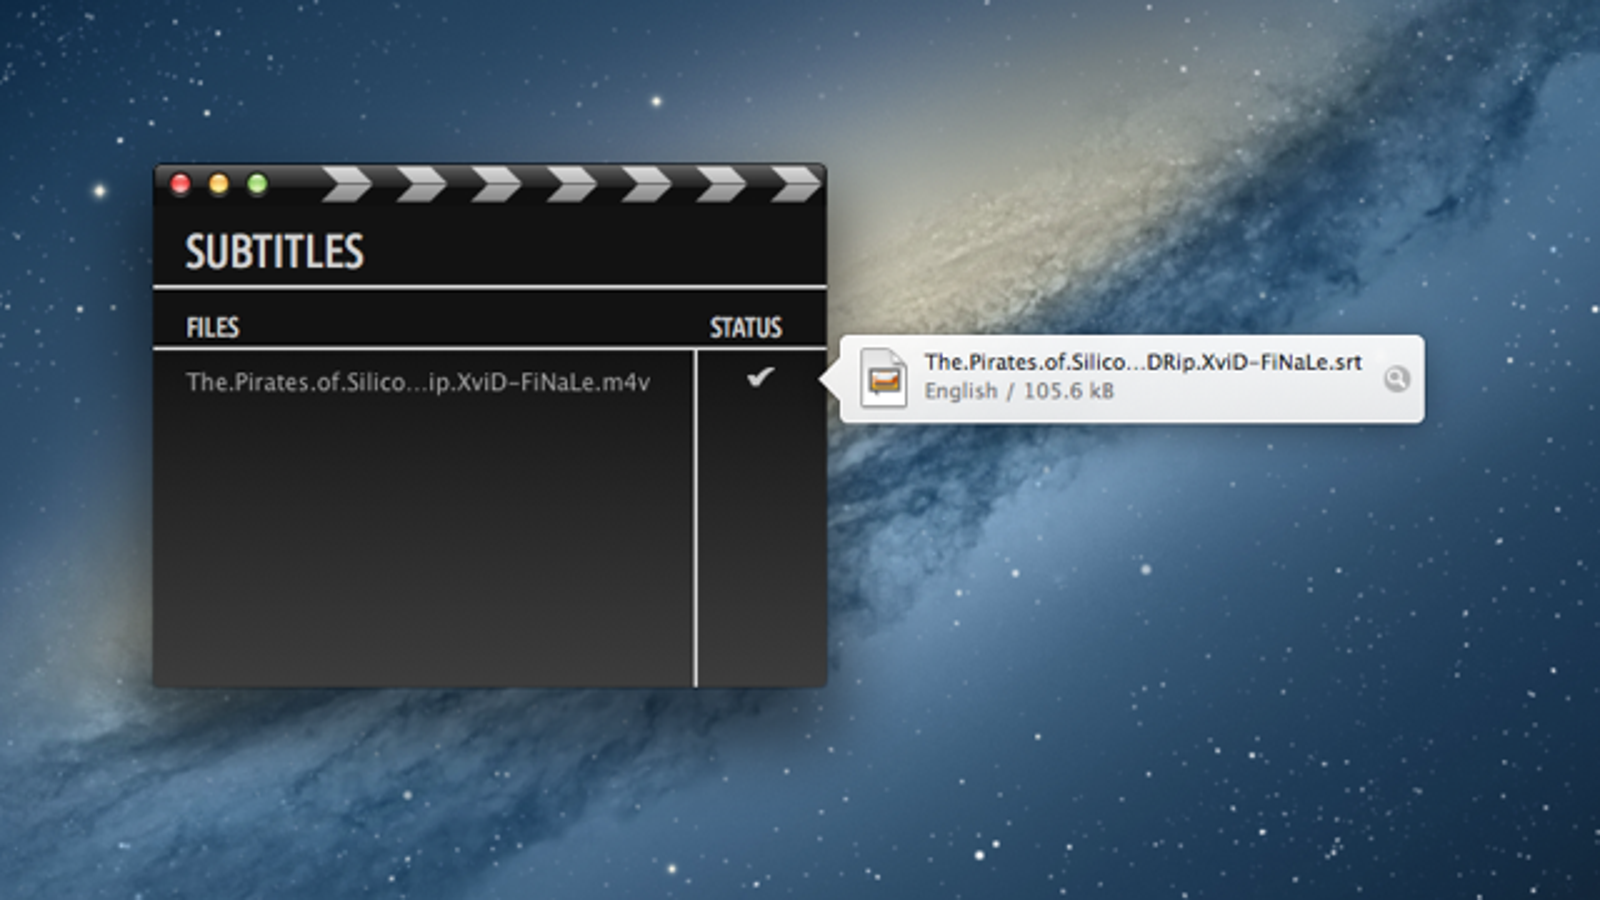 Subtitles Automatically Downloads Subtitles for Movies on Your Mac